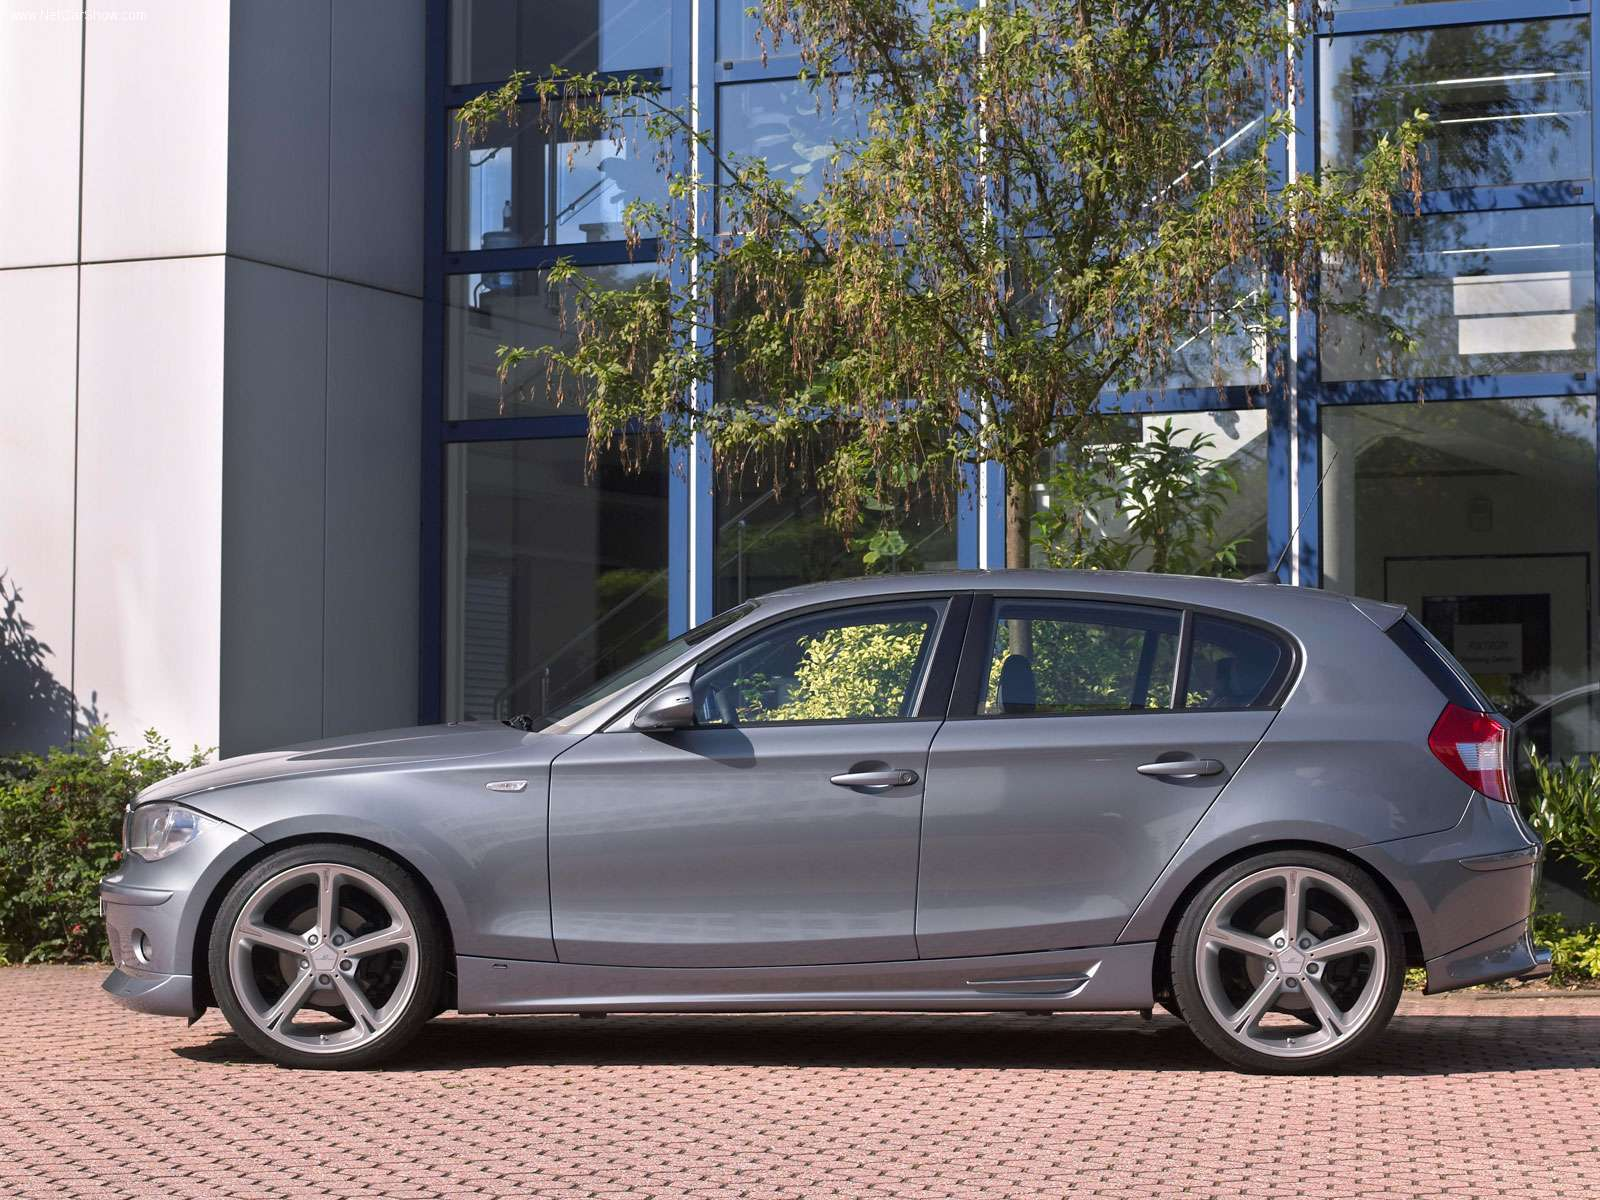 BMW 1 Series 3 Door Hatchback 2009